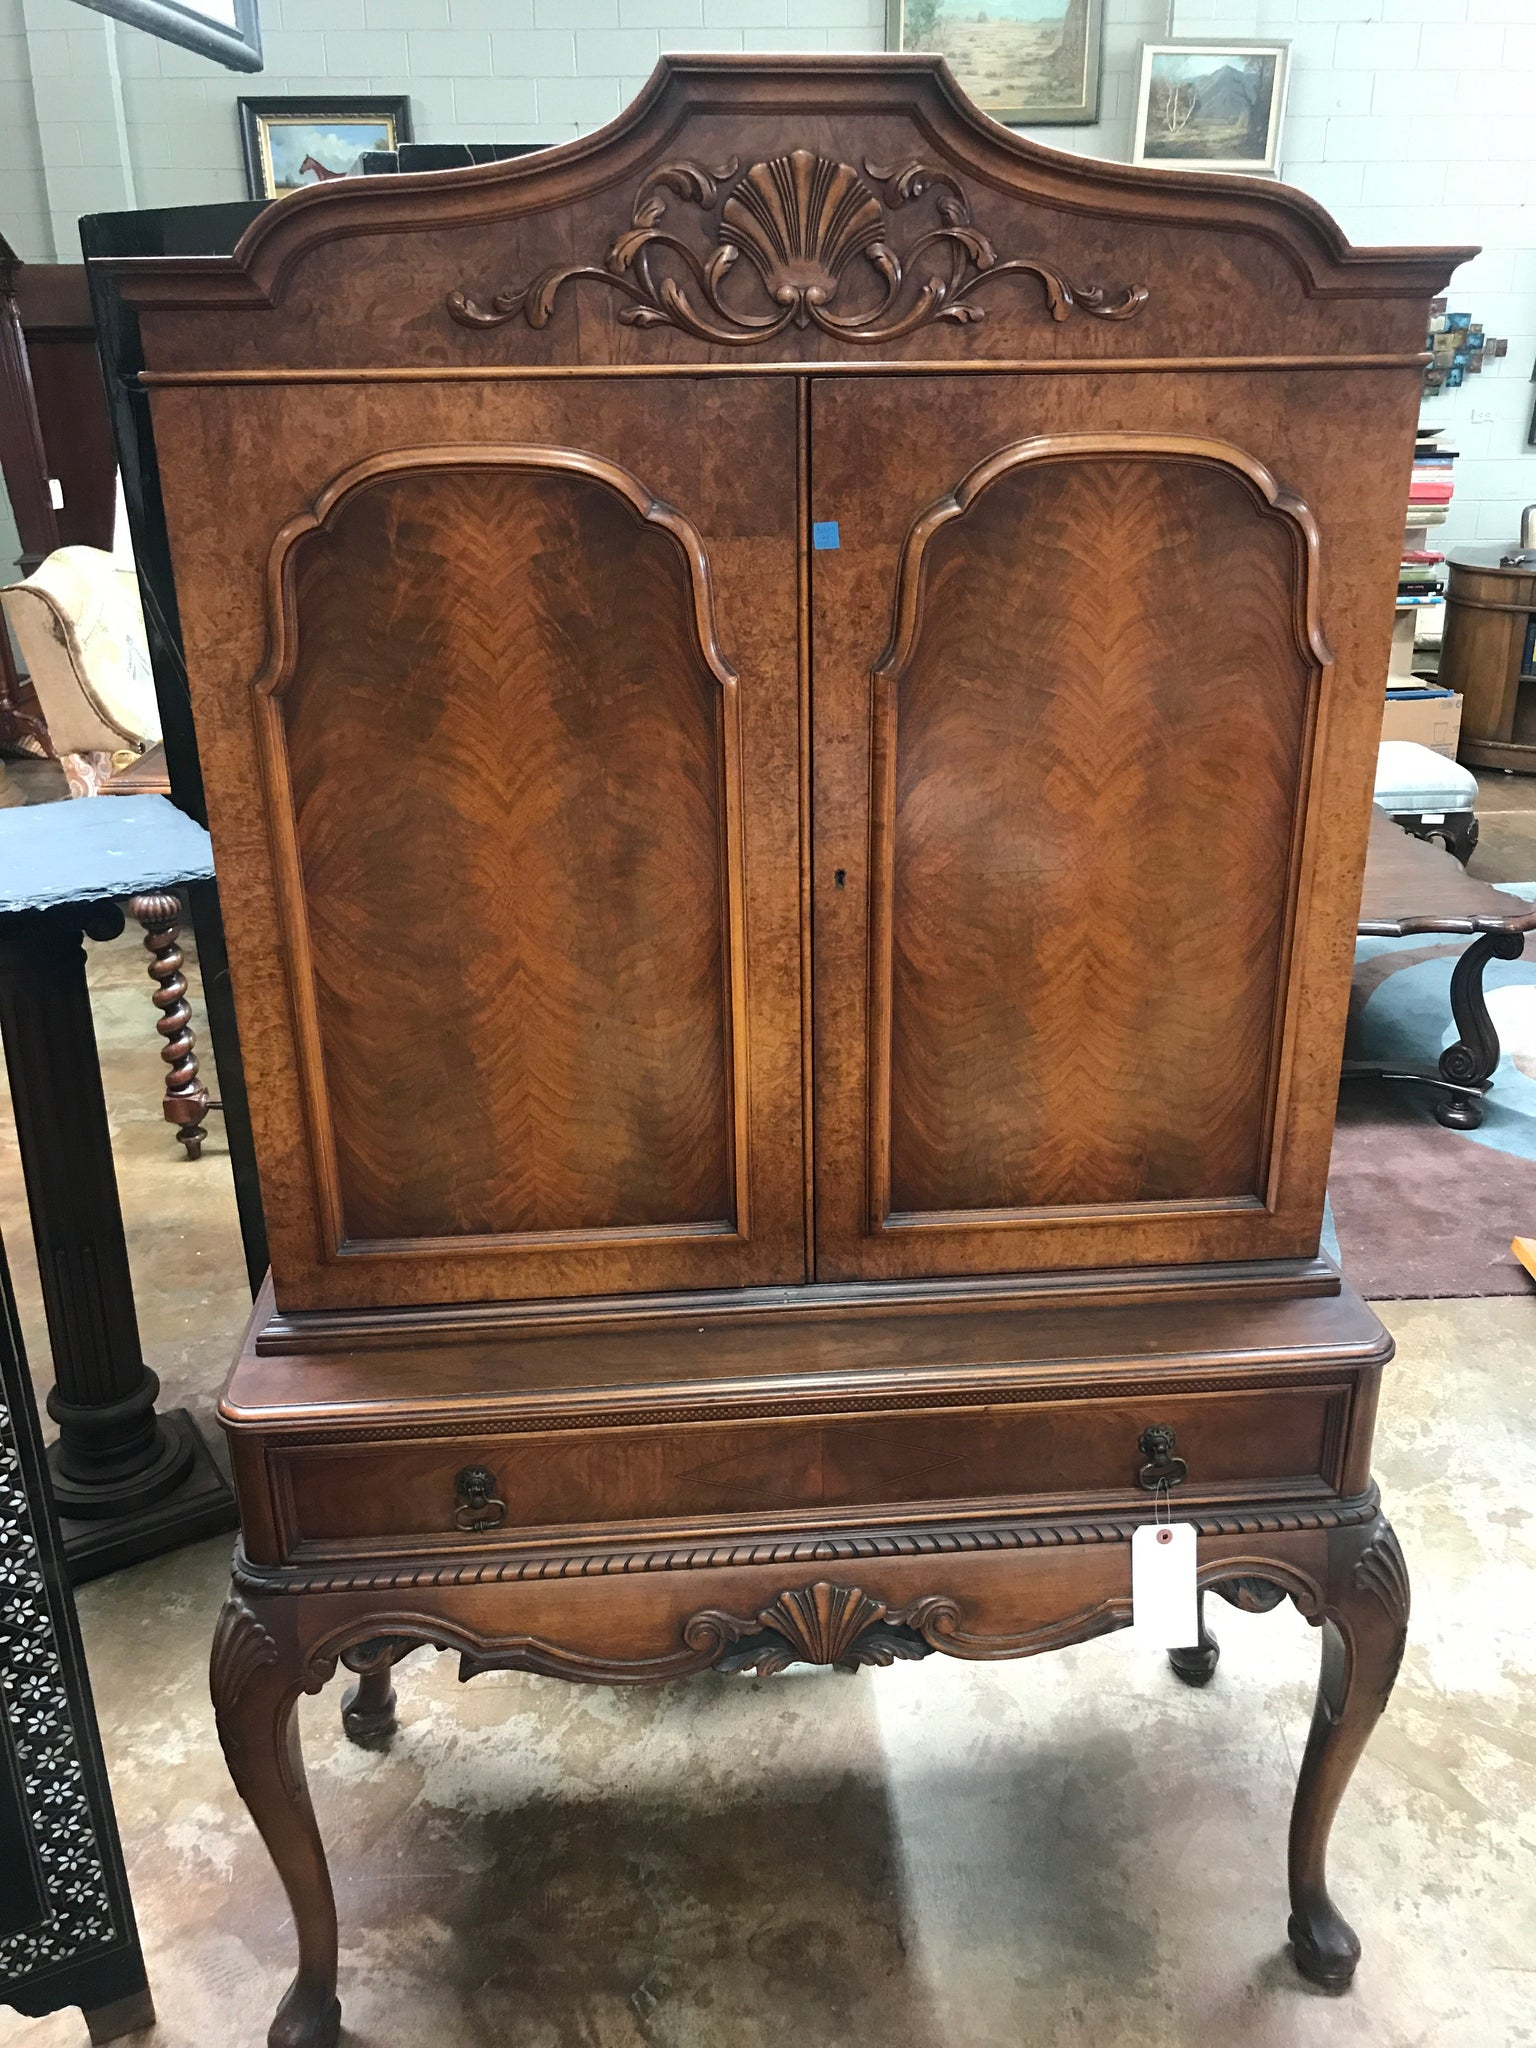 1920's carved & Inlaid walnut cabinet